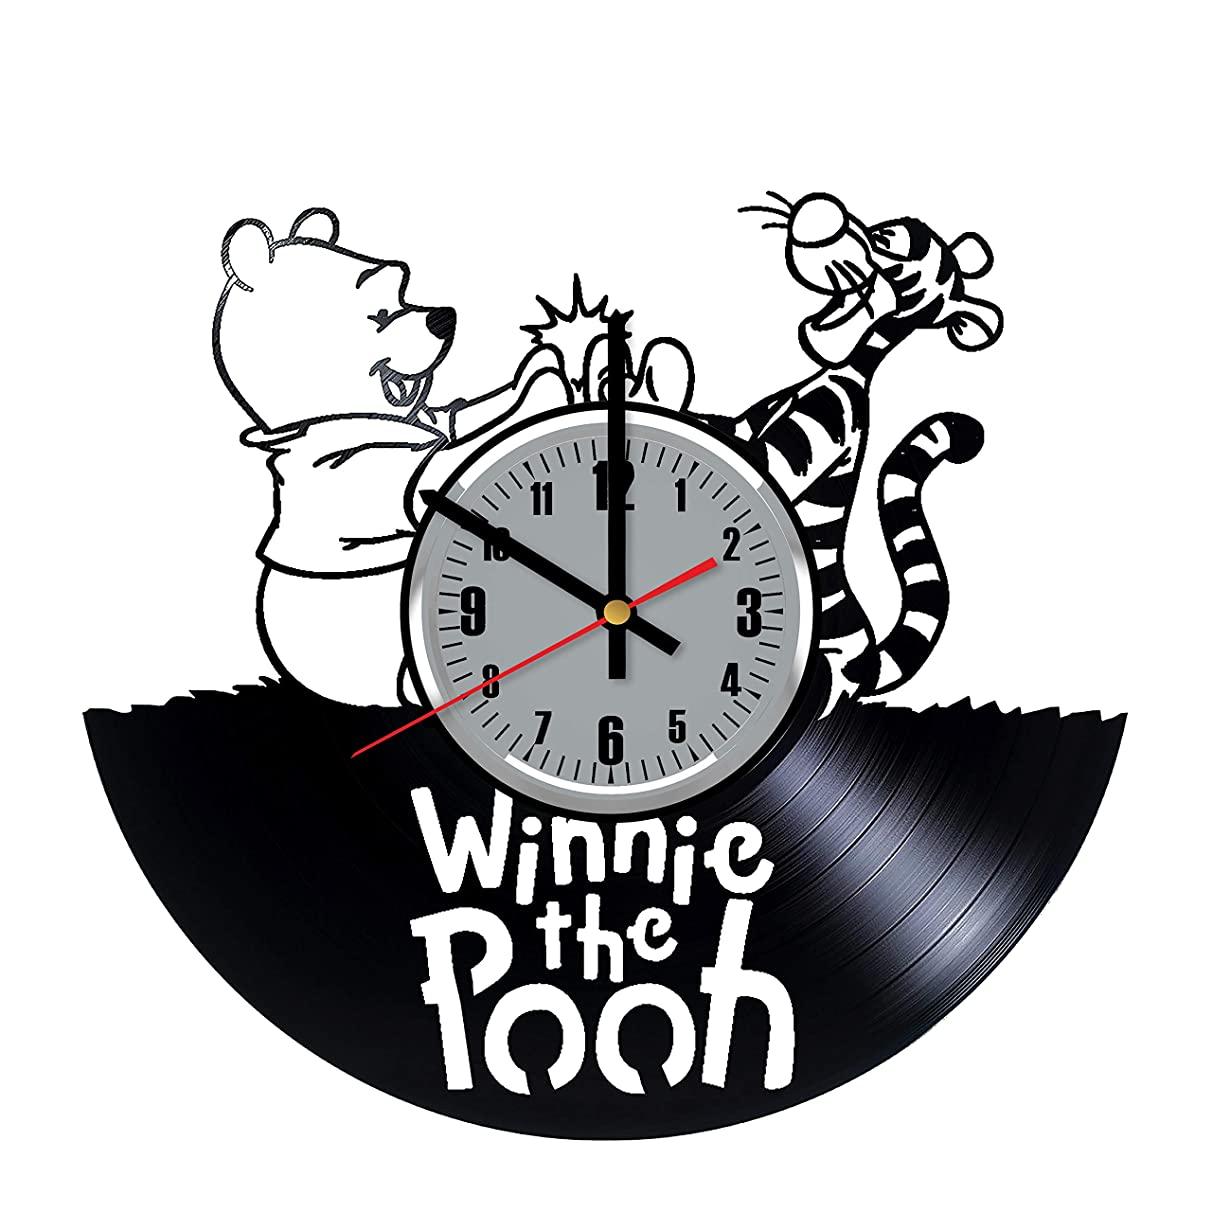 Winnie The Pooh and Tigger Vinyl Wall Clock - Art Handmade Wall Decor Made of Vinyl Record - Original Gift for Any Occasion